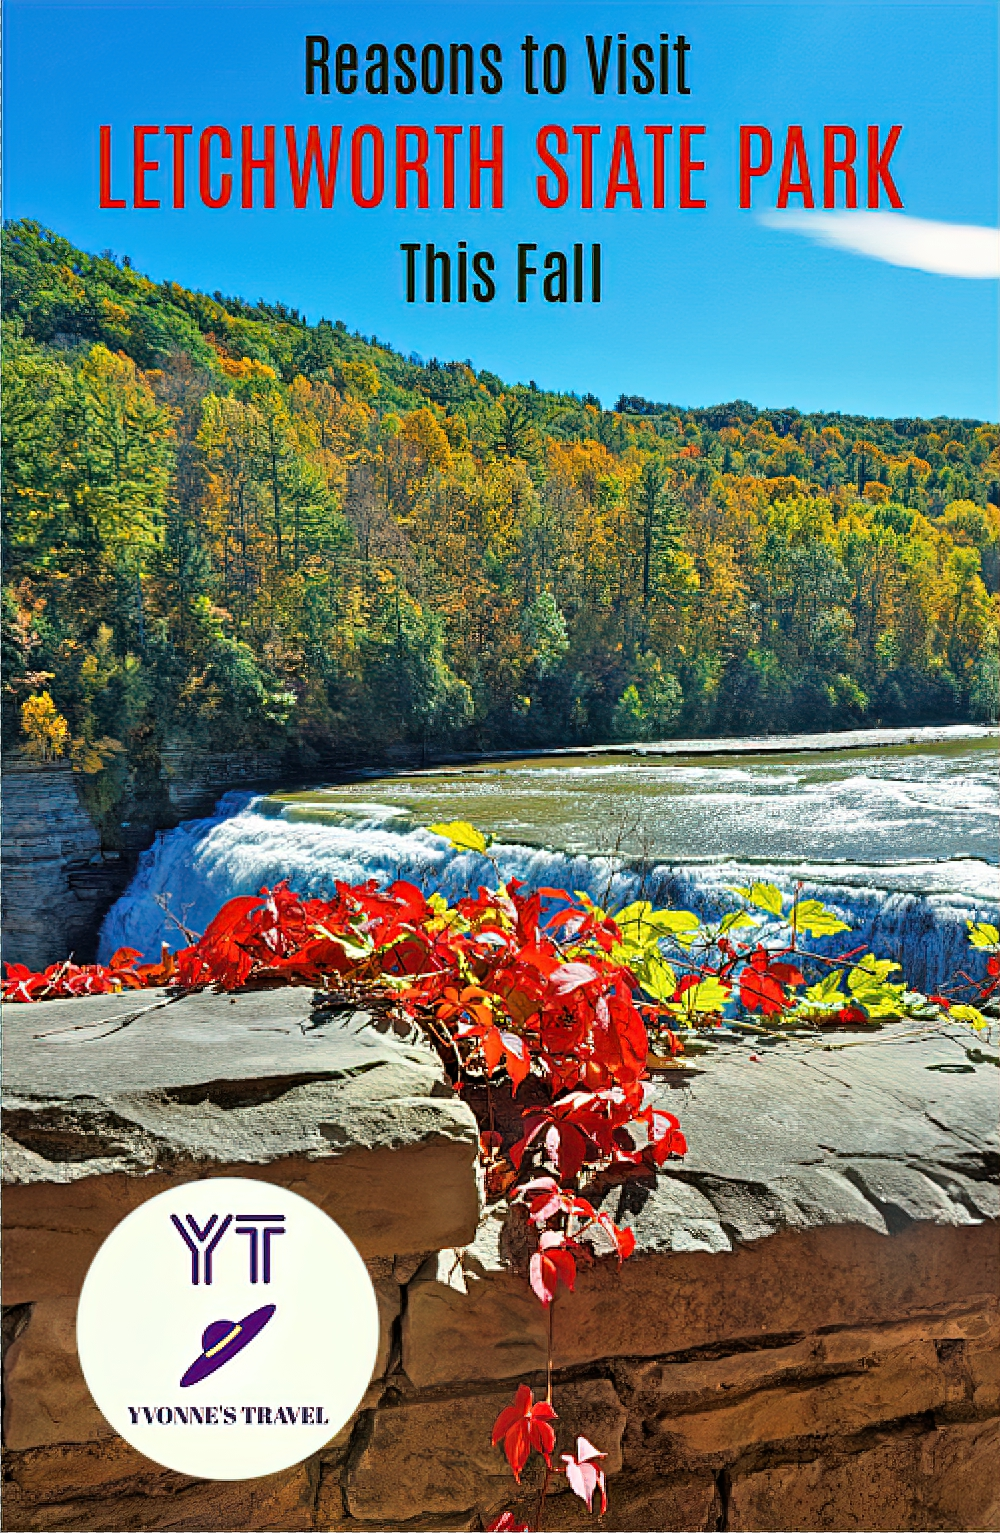 Letchworth State Park offers incredible beauty all year round, but when the fall season arrives, it turns into a colorful masterpiece.